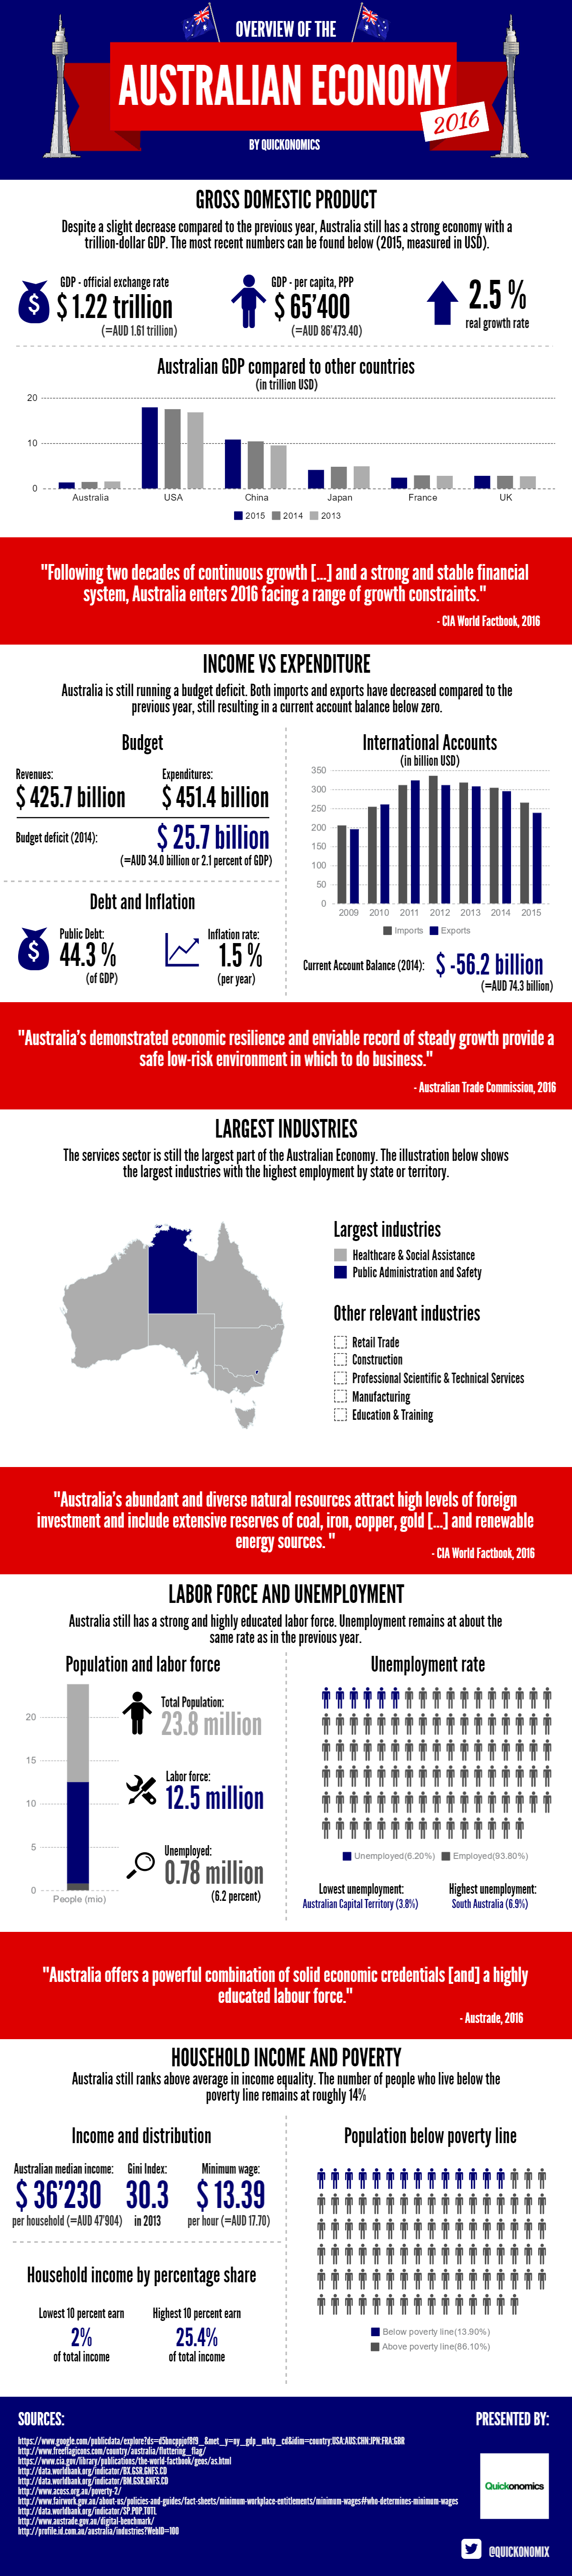 Overview of Australian Economy 2016